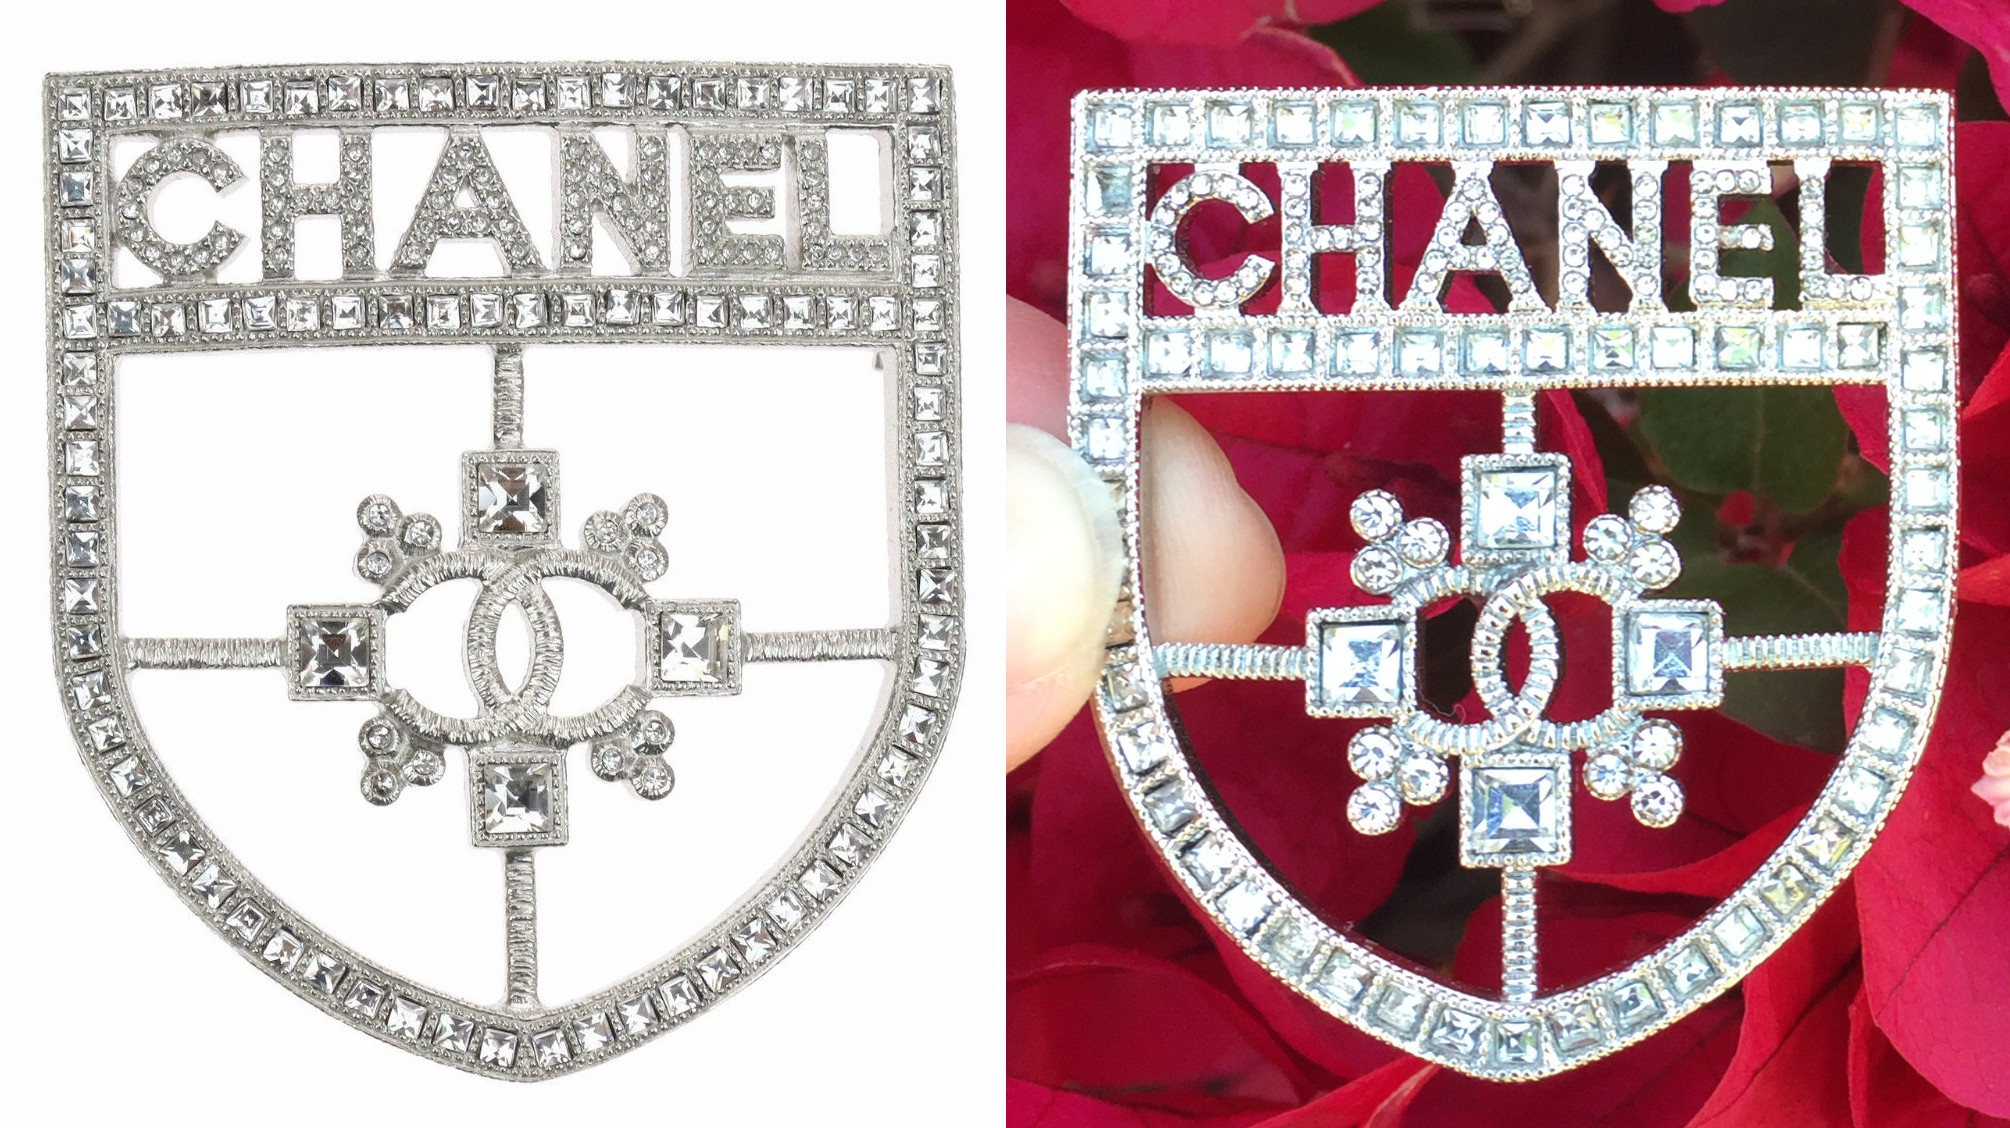 fake authentic differences on Chanel jewelry brooch